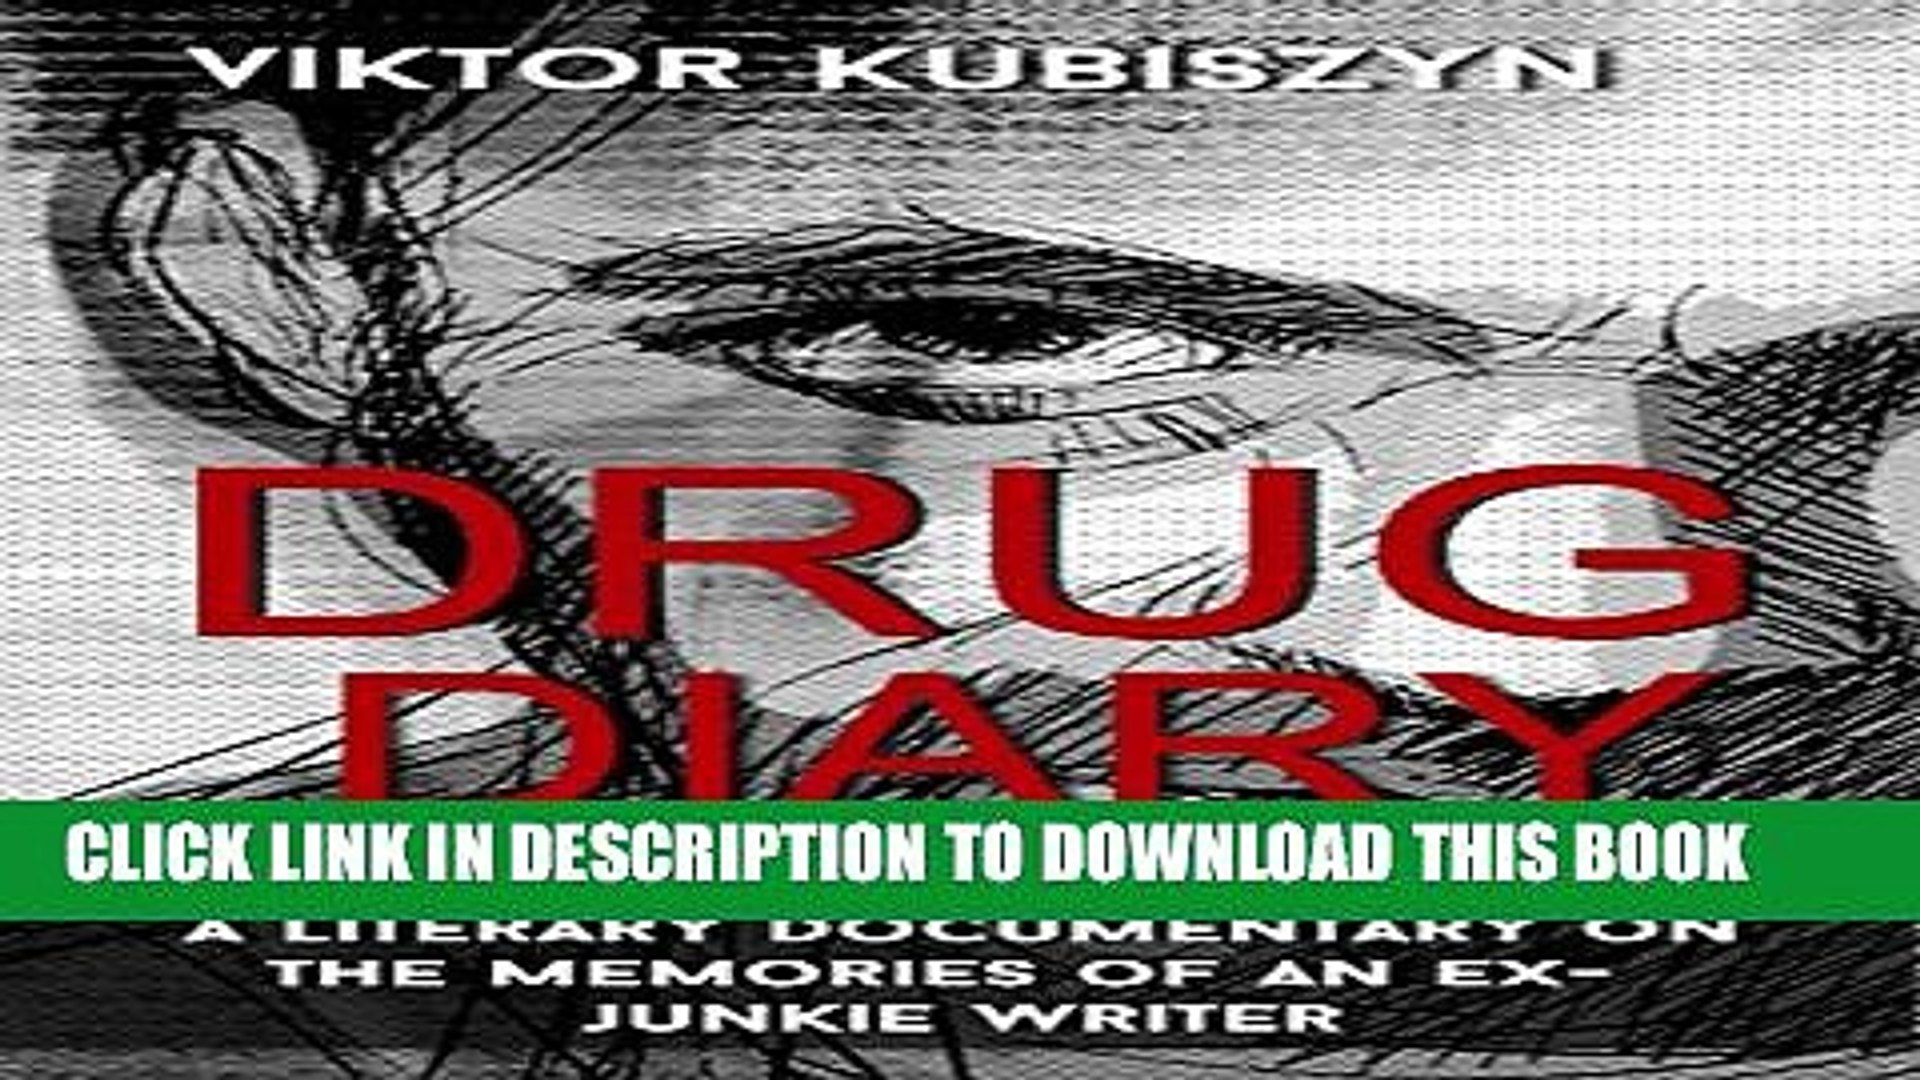 [PDF] Drug Diary: A literary documentary on the memories of an ex-junkie writer Popular Online